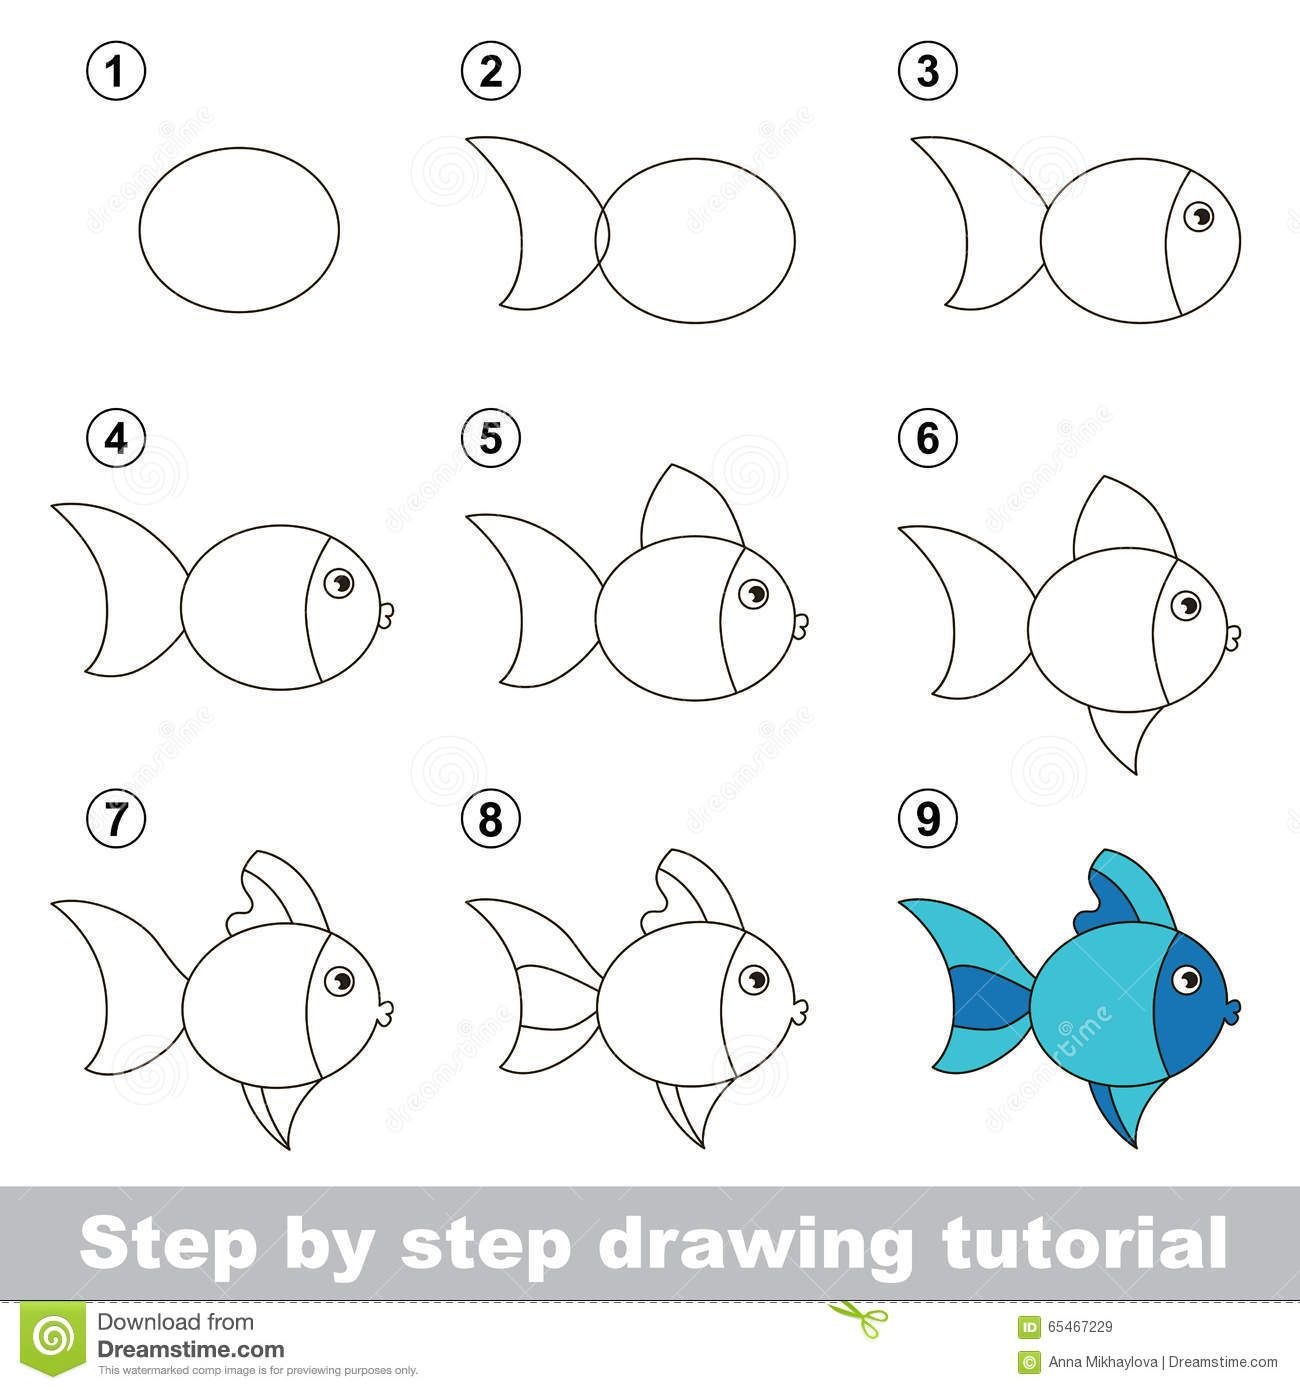 Drawing Tutorial How To Draw A Cute Fish Download From Over 55 Million High Quality Stock Photos Imag Drawing Tutorial Easy Fish Drawing Cute Easy Drawings